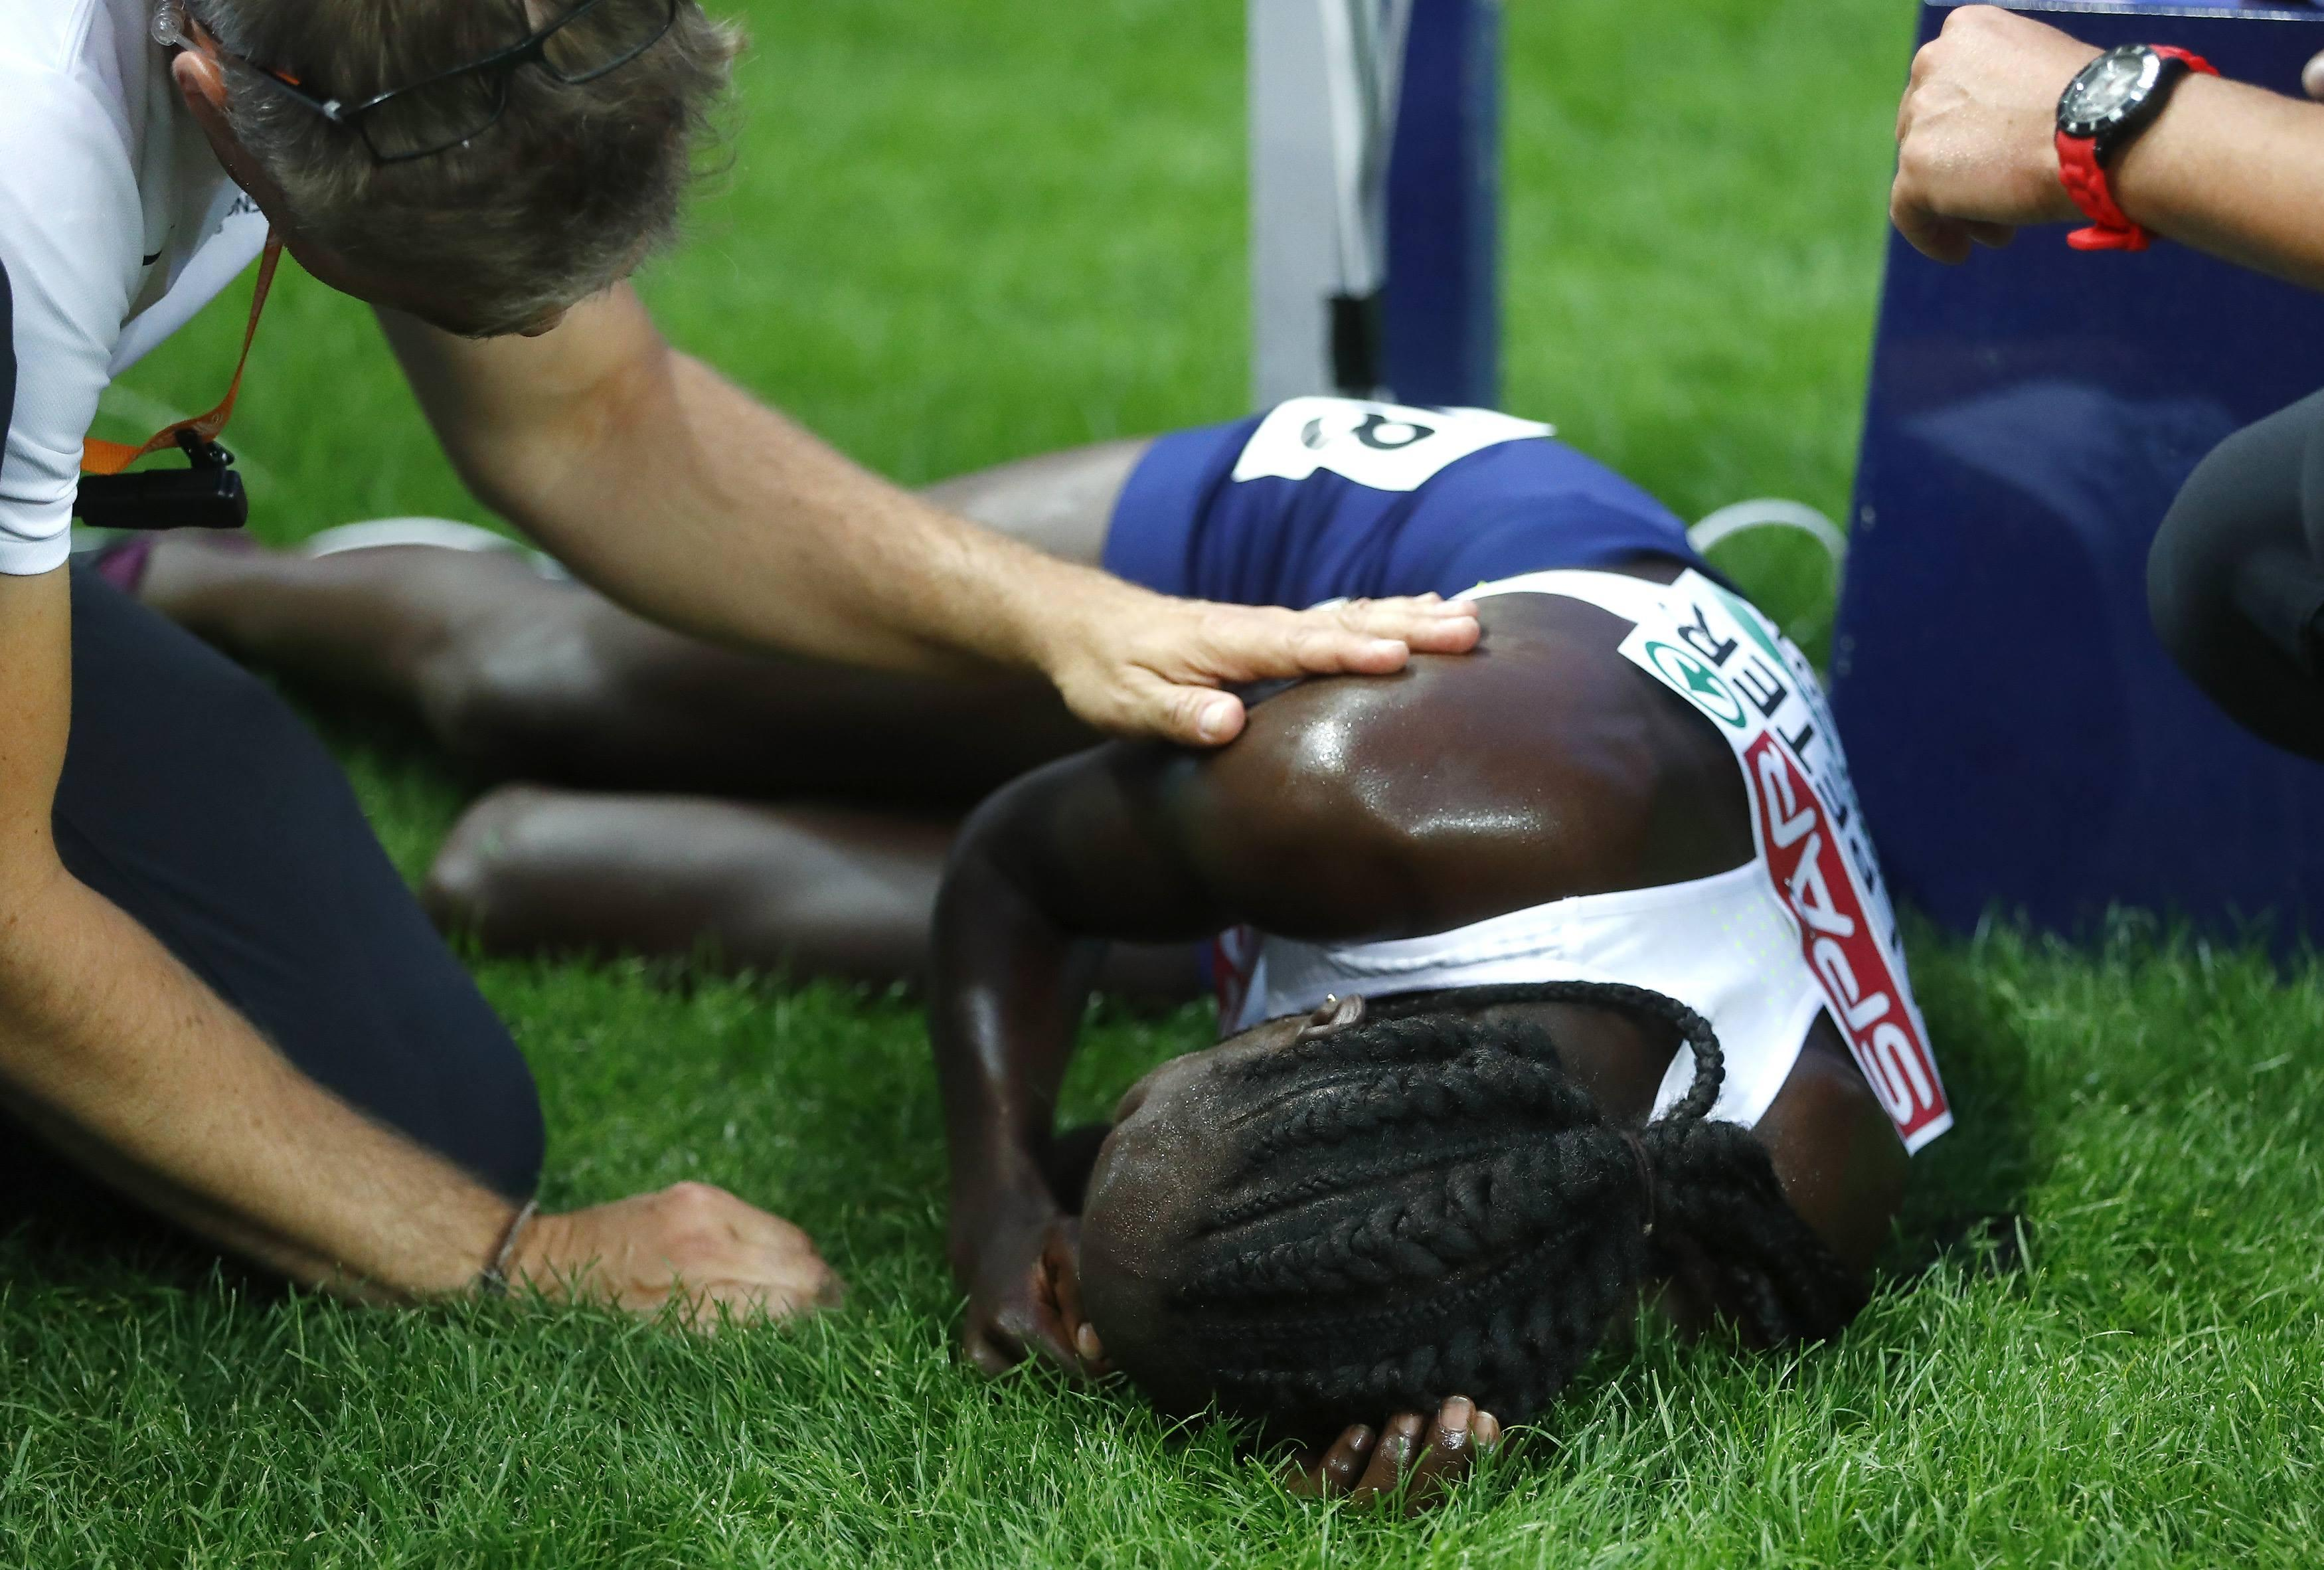 Lonah Salpeter weeps on the grass after finishing fourth